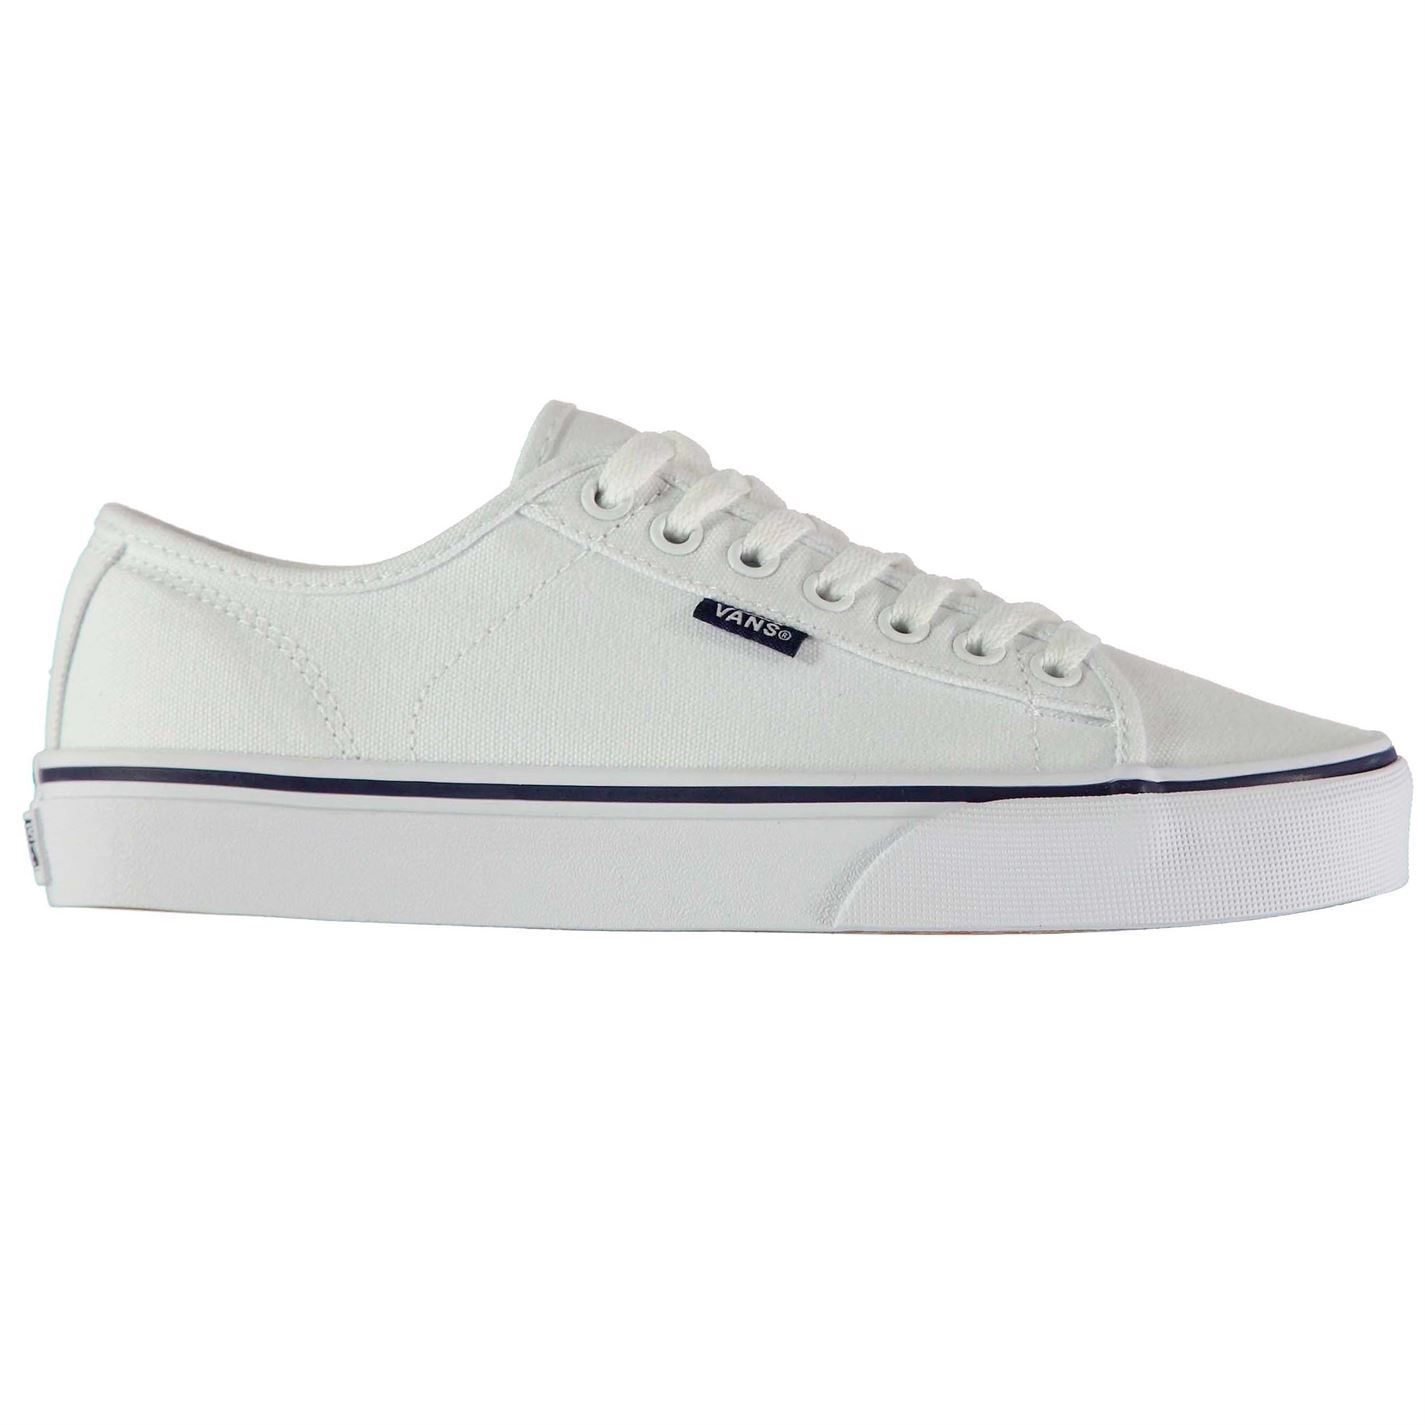 01fed6a5bf VANS Ferris SNEAKERS Mens Gents Canvas Low Laces Fastened Padded ...